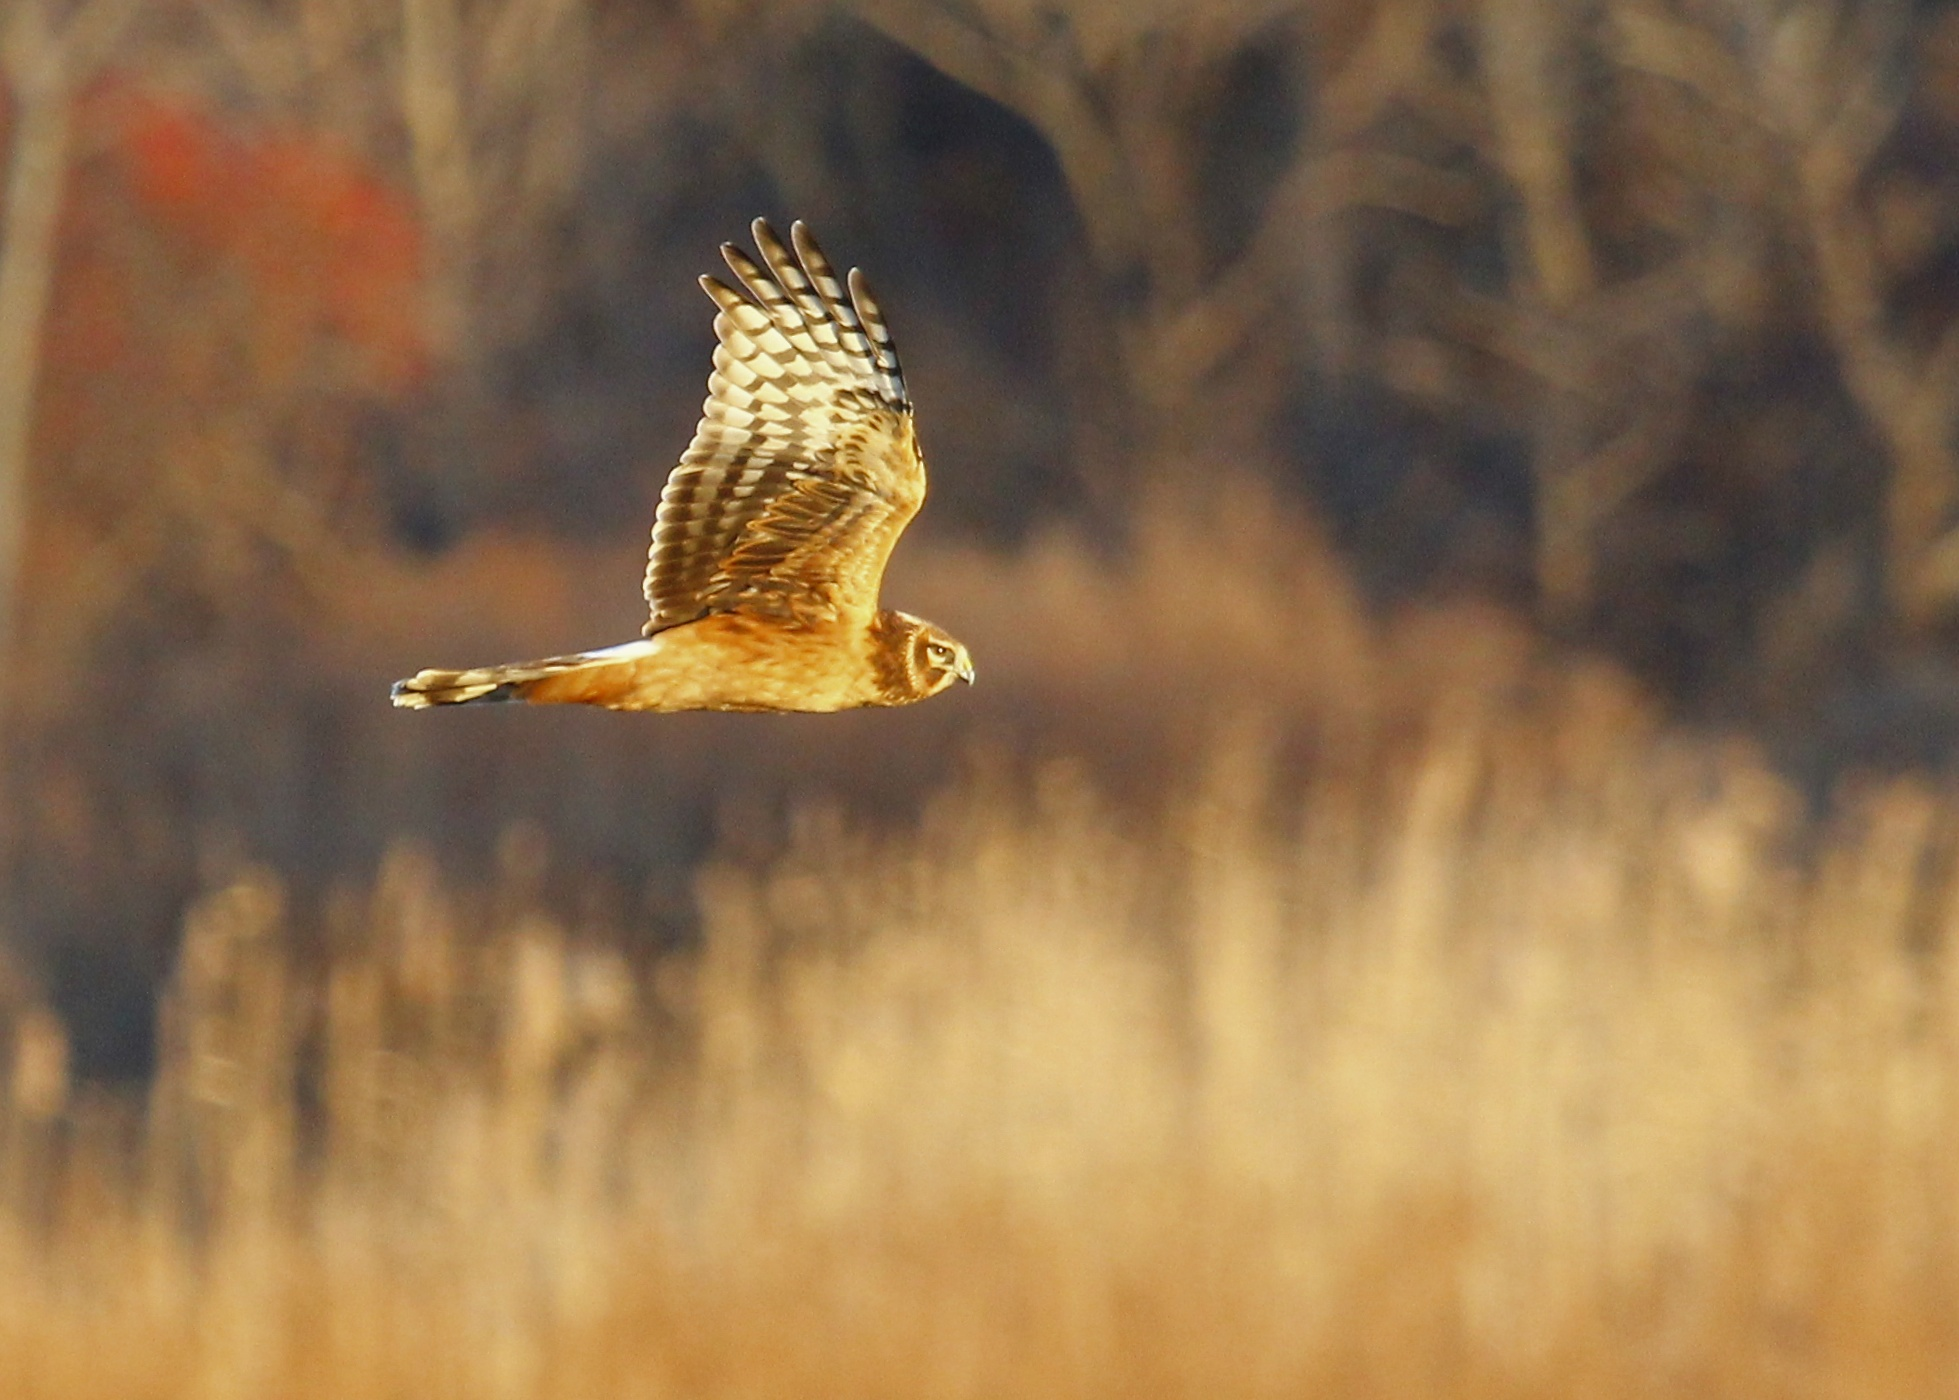 During the survey I did not get any owl shots - it was too dark and the birds too distant. I did get this Northern Harrier out at Wallkill River NWR on 12/7/13.